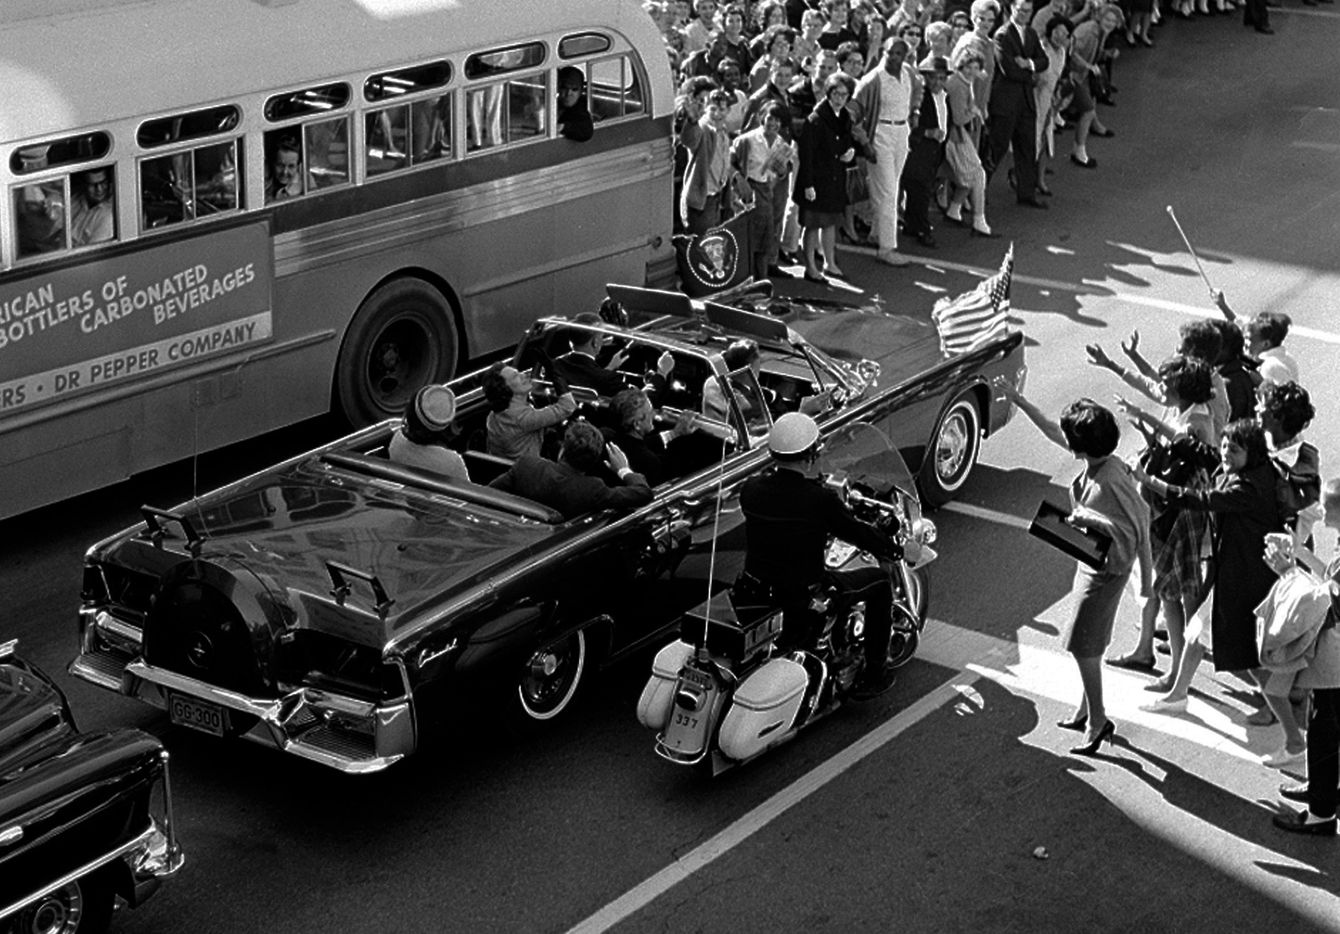 Fans of the president and first lady were able to get within feet of the open limousine on Main Street at Ervay Street in Dallas as the motorcade approached Dealey Plaza on Nov. 22, 1963.